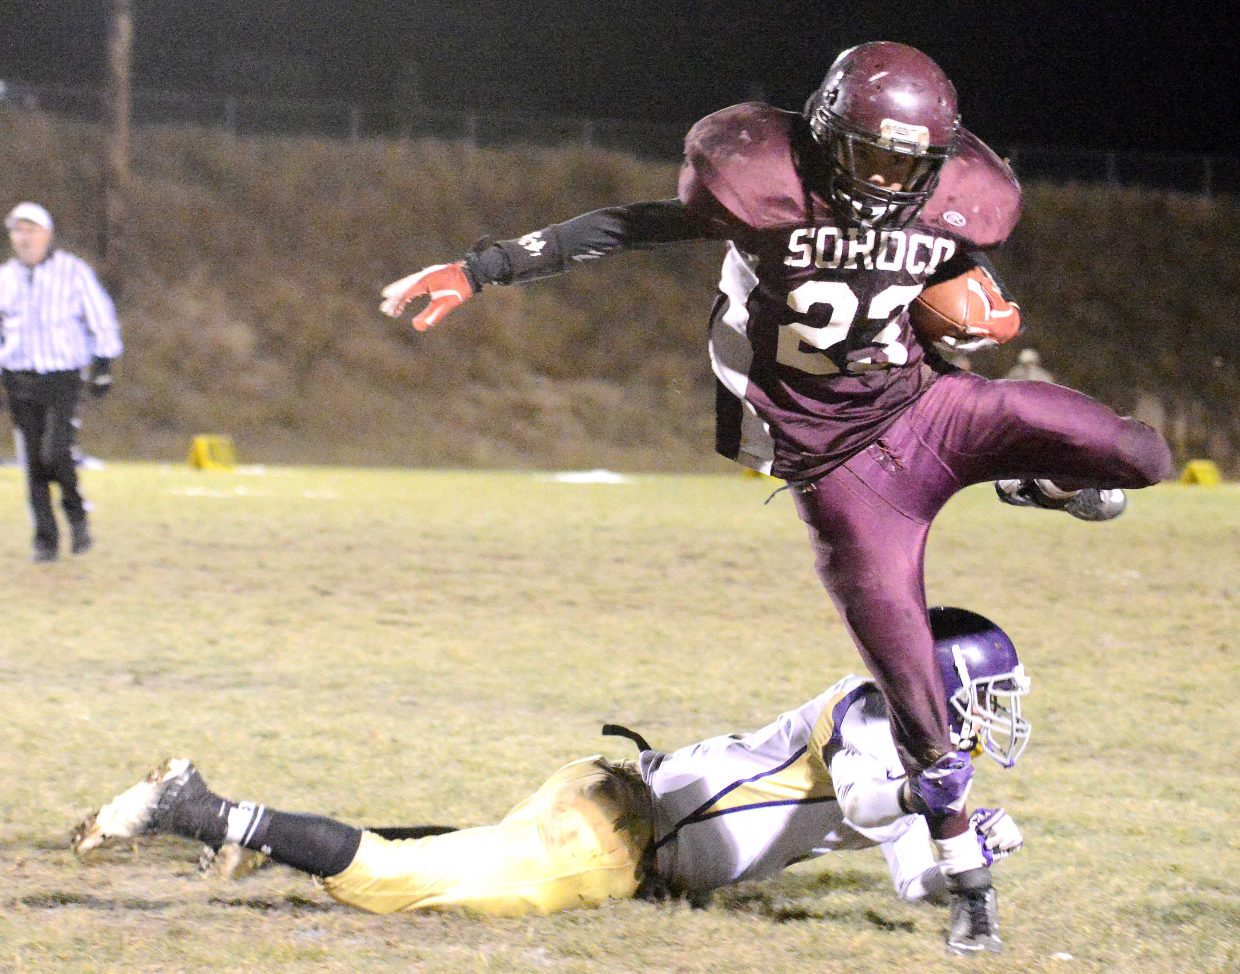 Soroco's Carl Rossi leaps over West Grand's Case Gore on Friday to pick up a first down on a fourth-down play.